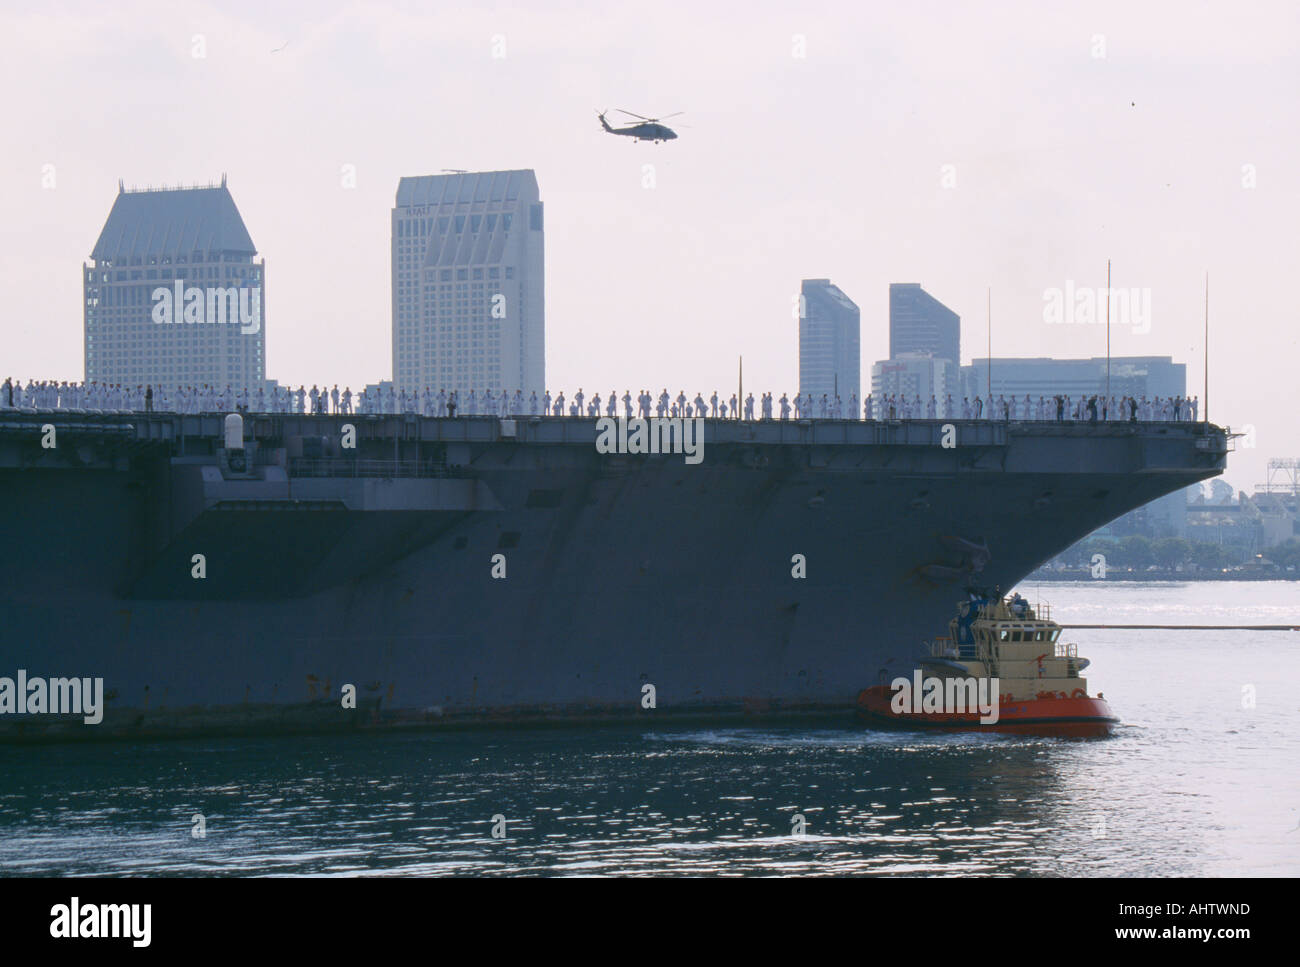 USS Abraham Lincoln arriving home after a tour of duty - Stock Image